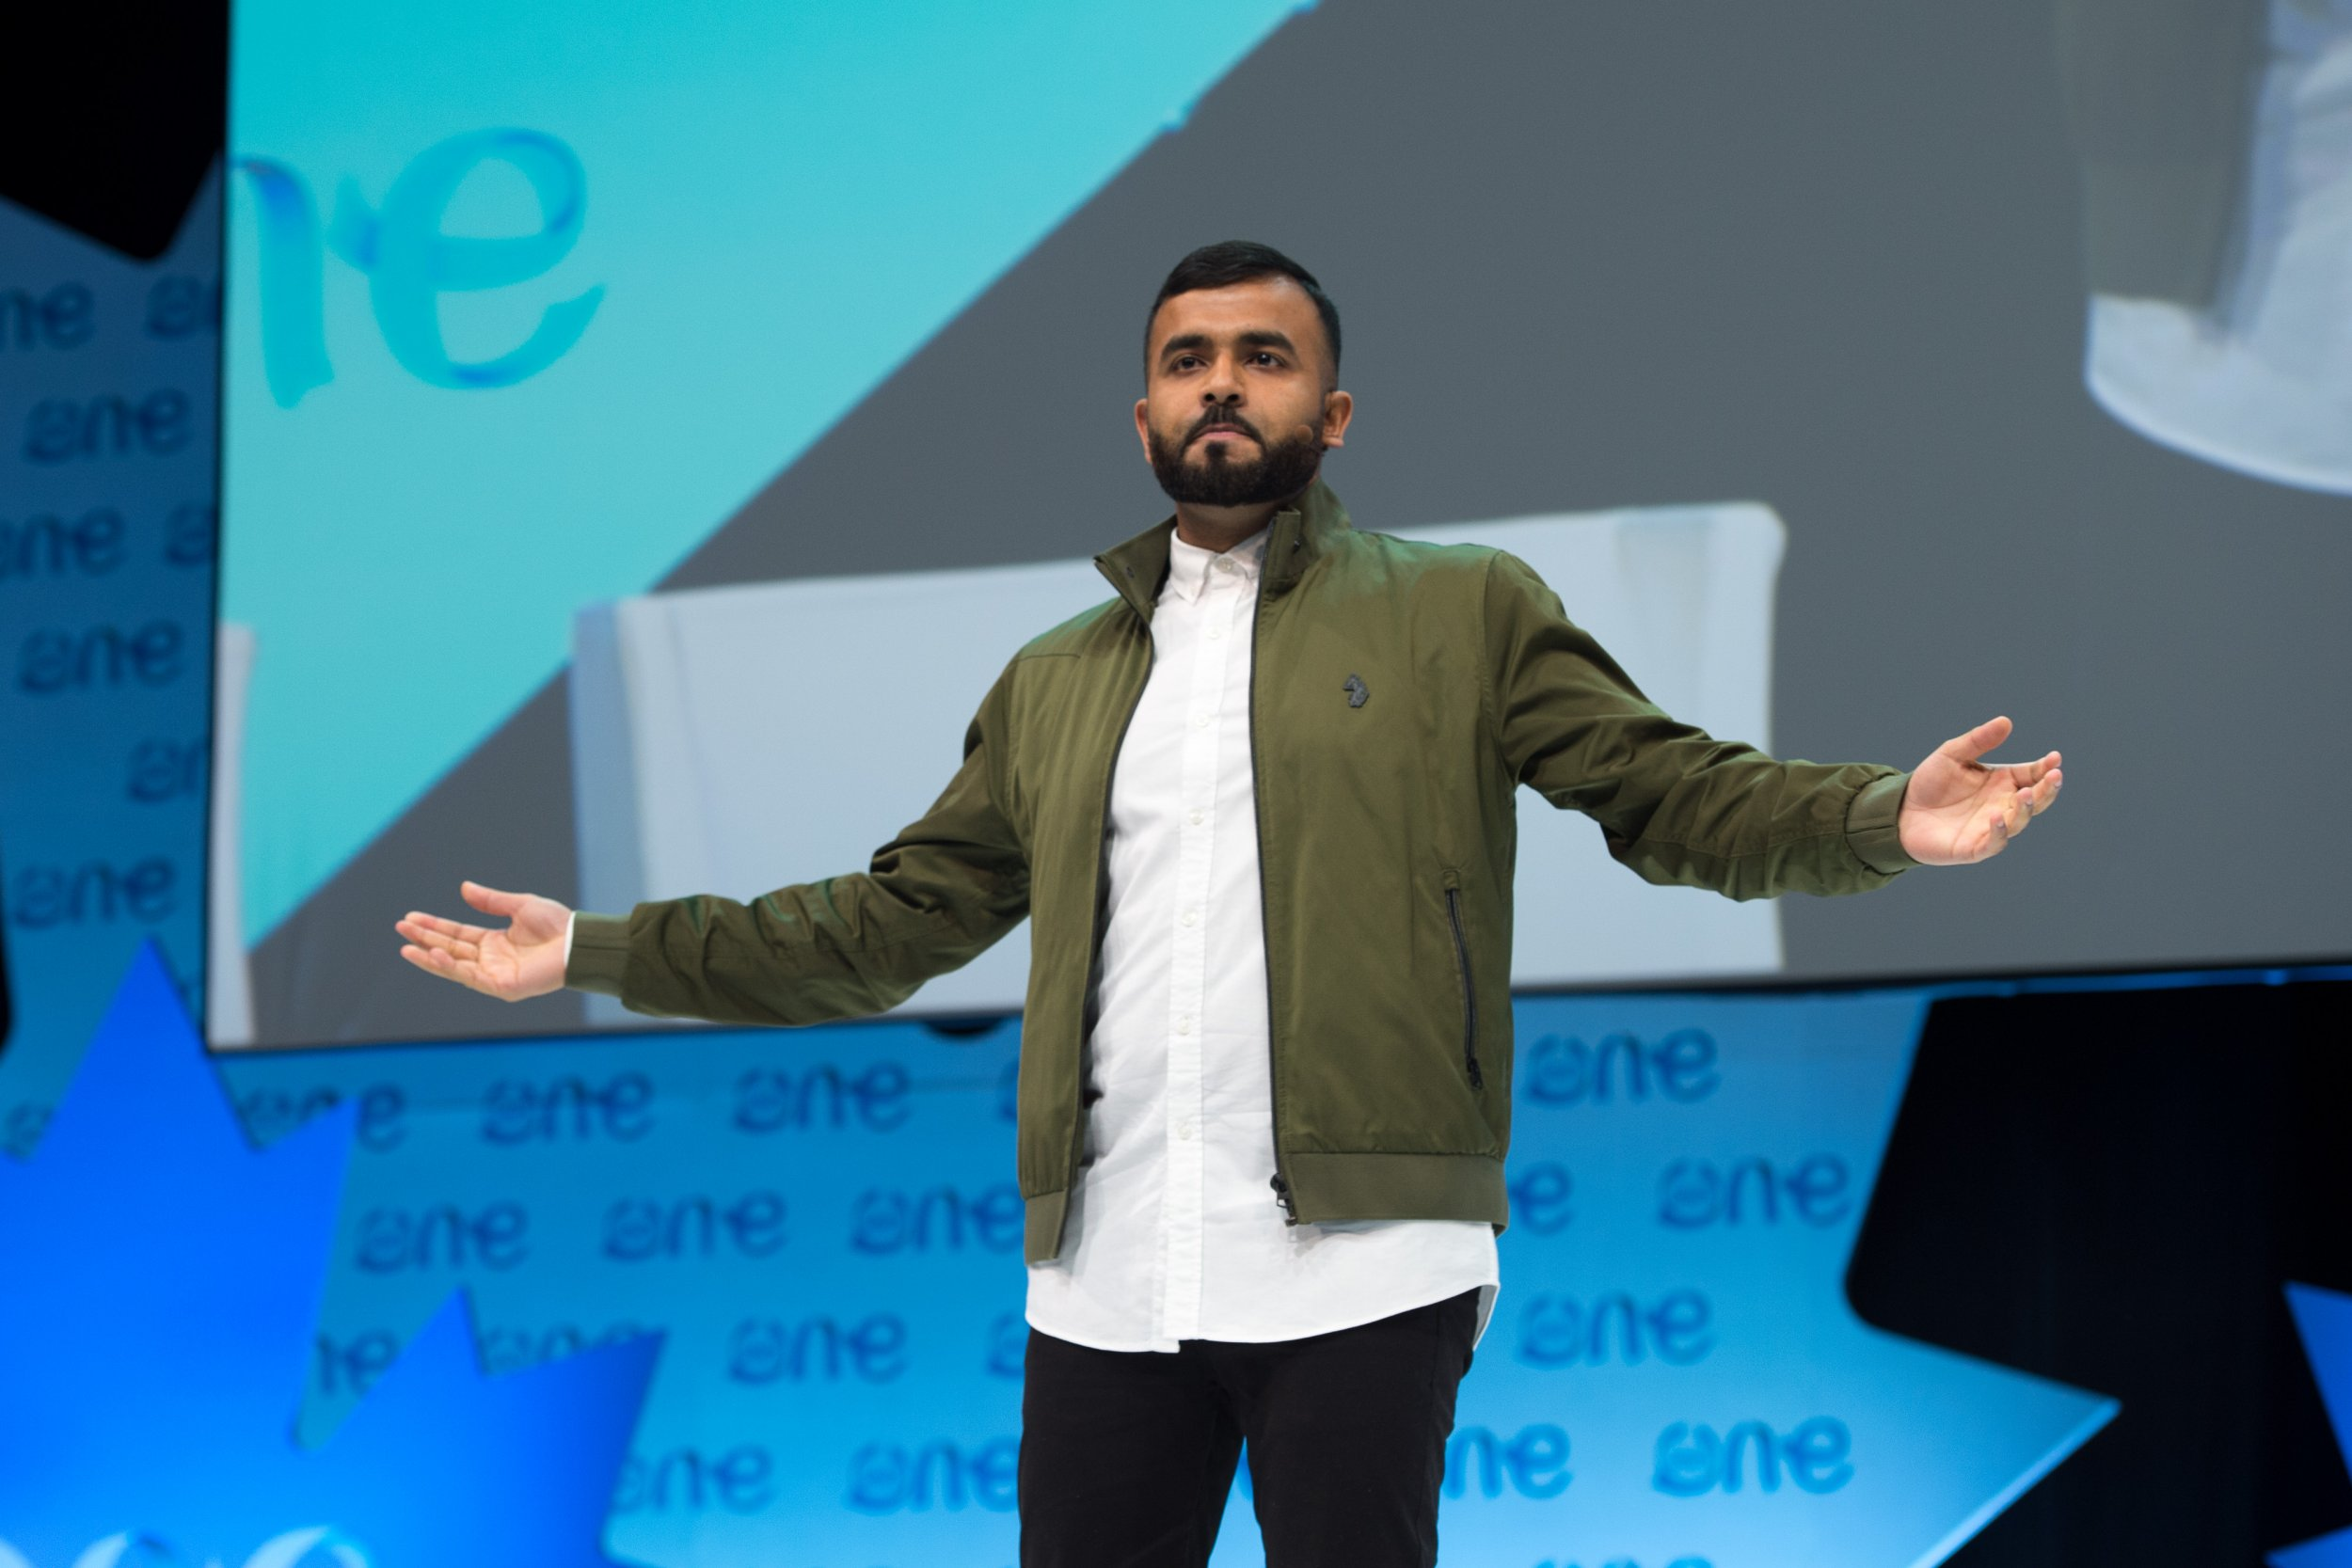 One Young World: Watch Hussain Manawer's Moving Performance on Mental Health